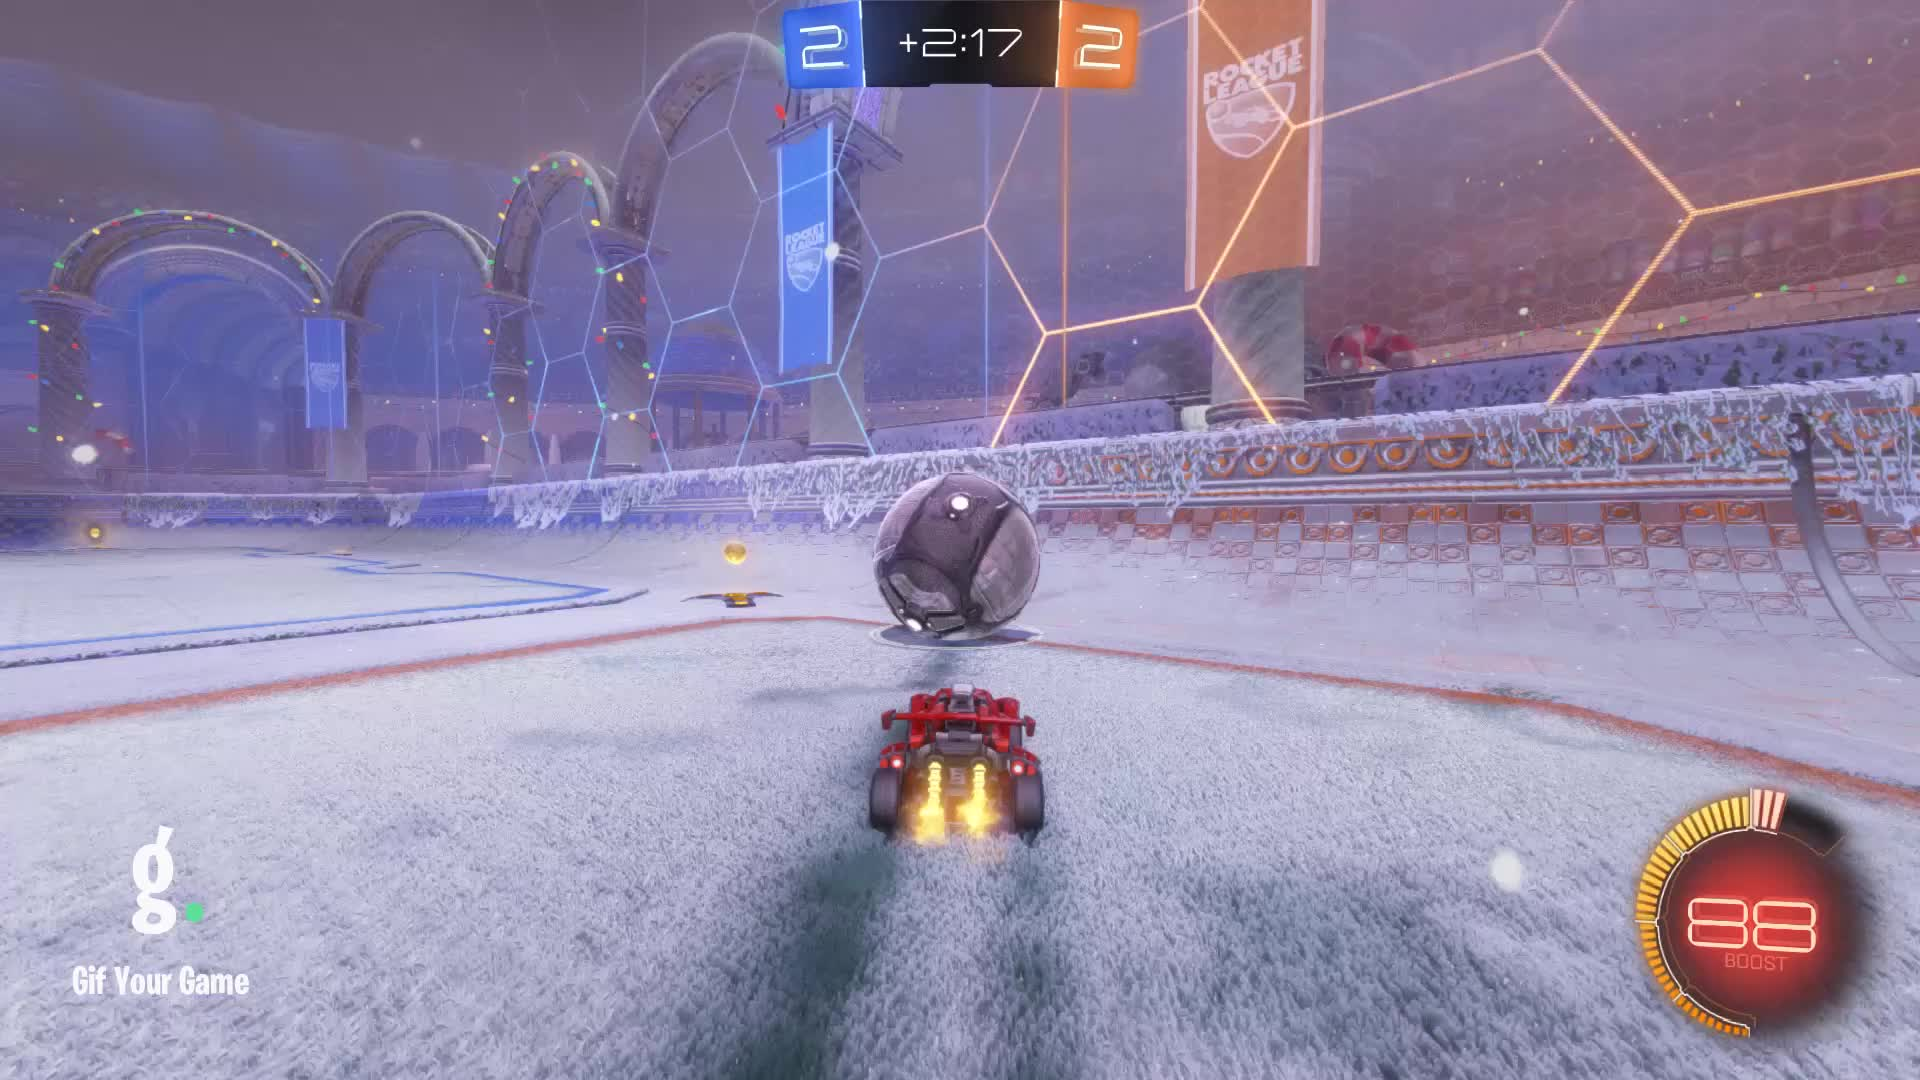 Gif Your Game, GifYourGame, Goal, Rocket League, RocketLeague, The Tiny Biscuit, Goal 5: The Tiny Biscuit GIFs